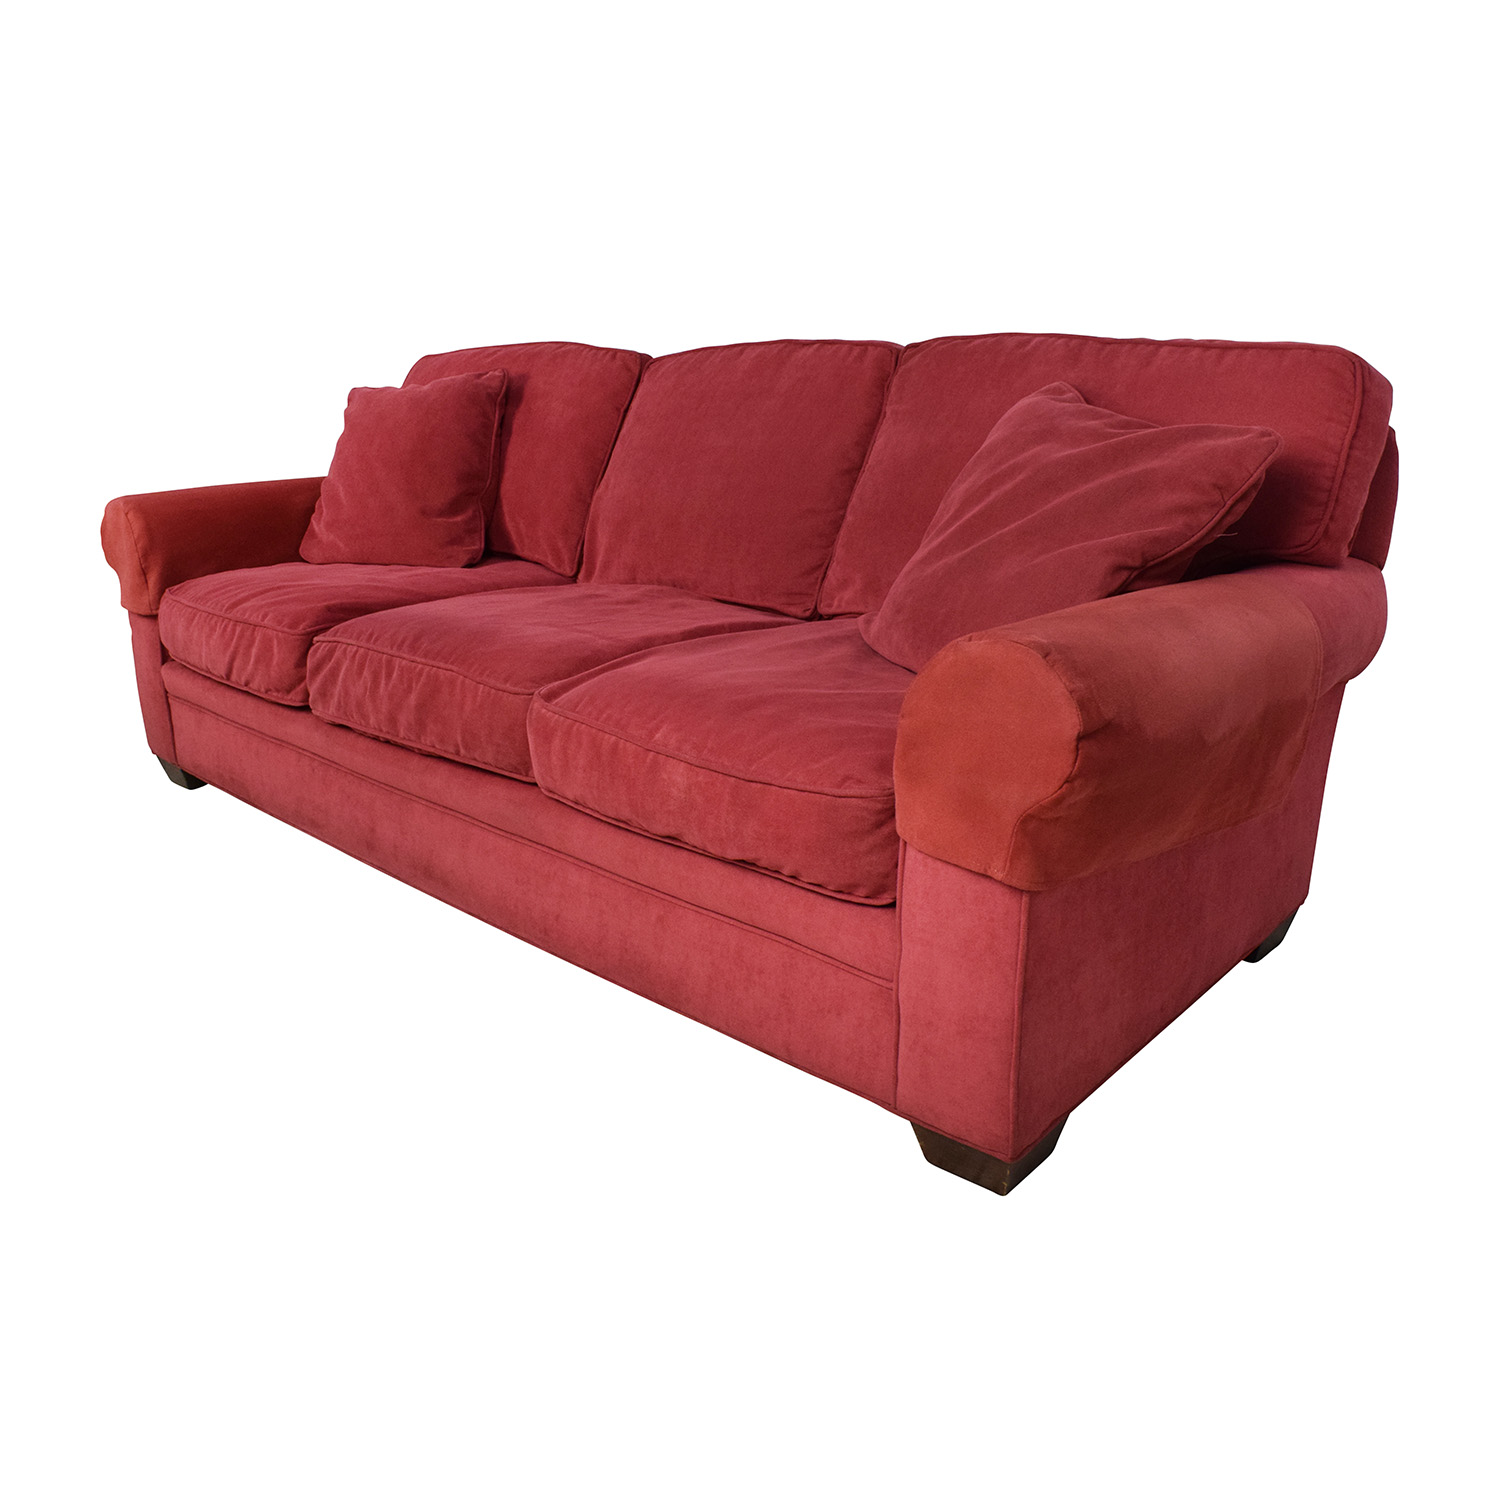 crate and barrel sofas canada mitchell gold sofa prices luxury slipcovers